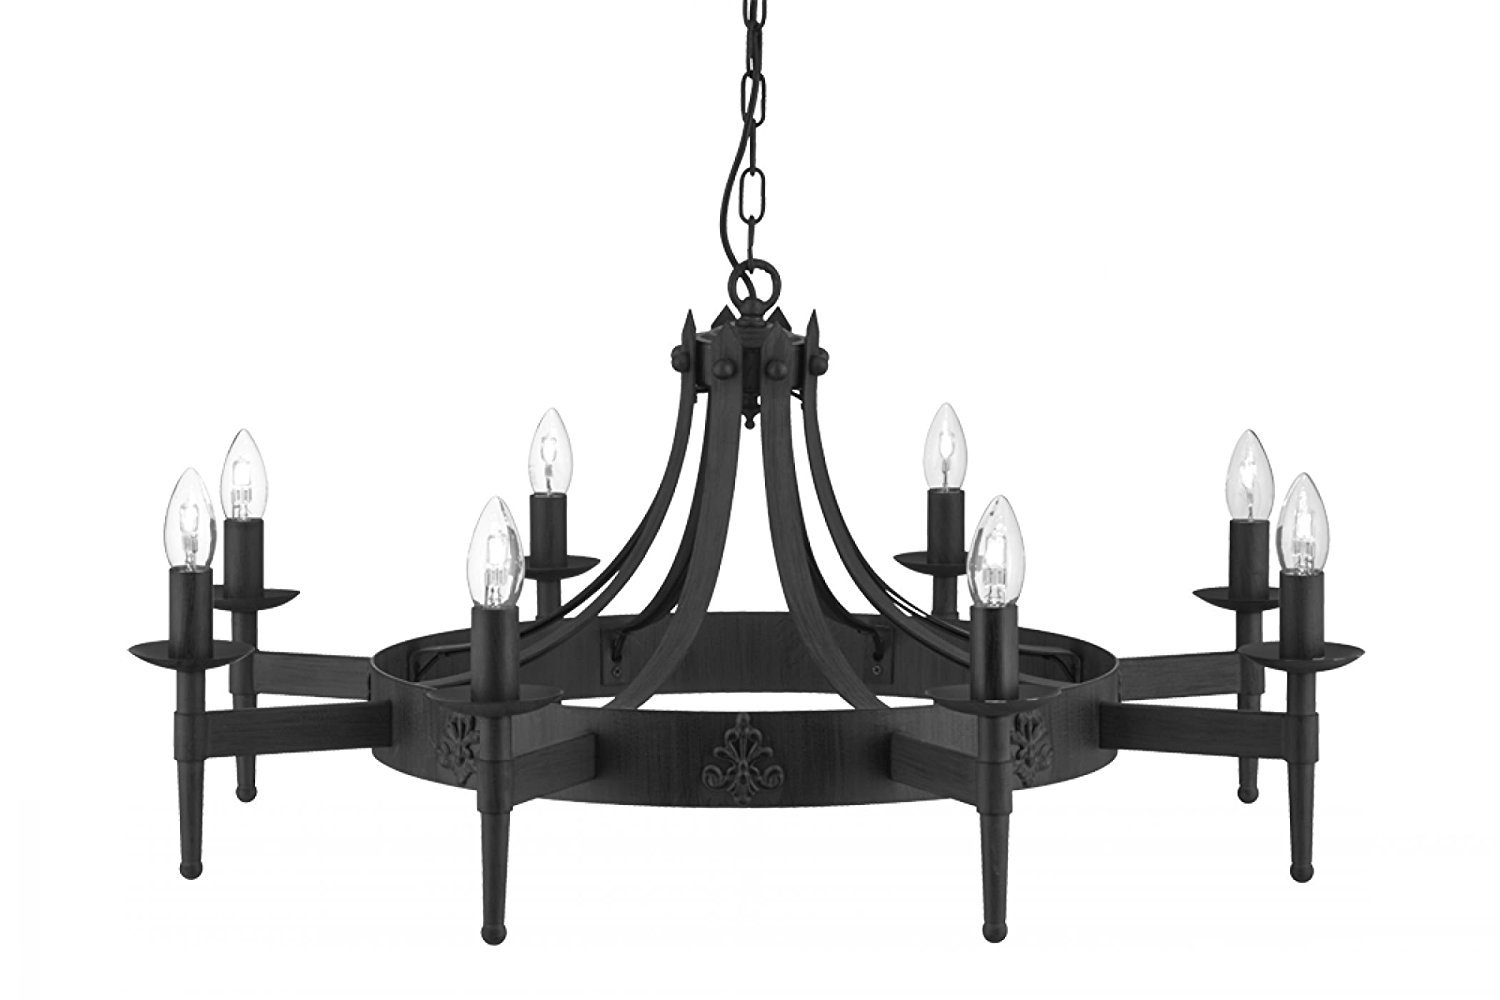 Searchlight cartwheel 8 gothic ceiling light 2428 8bk wrought iron searchlight cartwheel 8 gothic ceiling light 2428 8bk wrought iron black amazon lighting arubaitofo Gallery